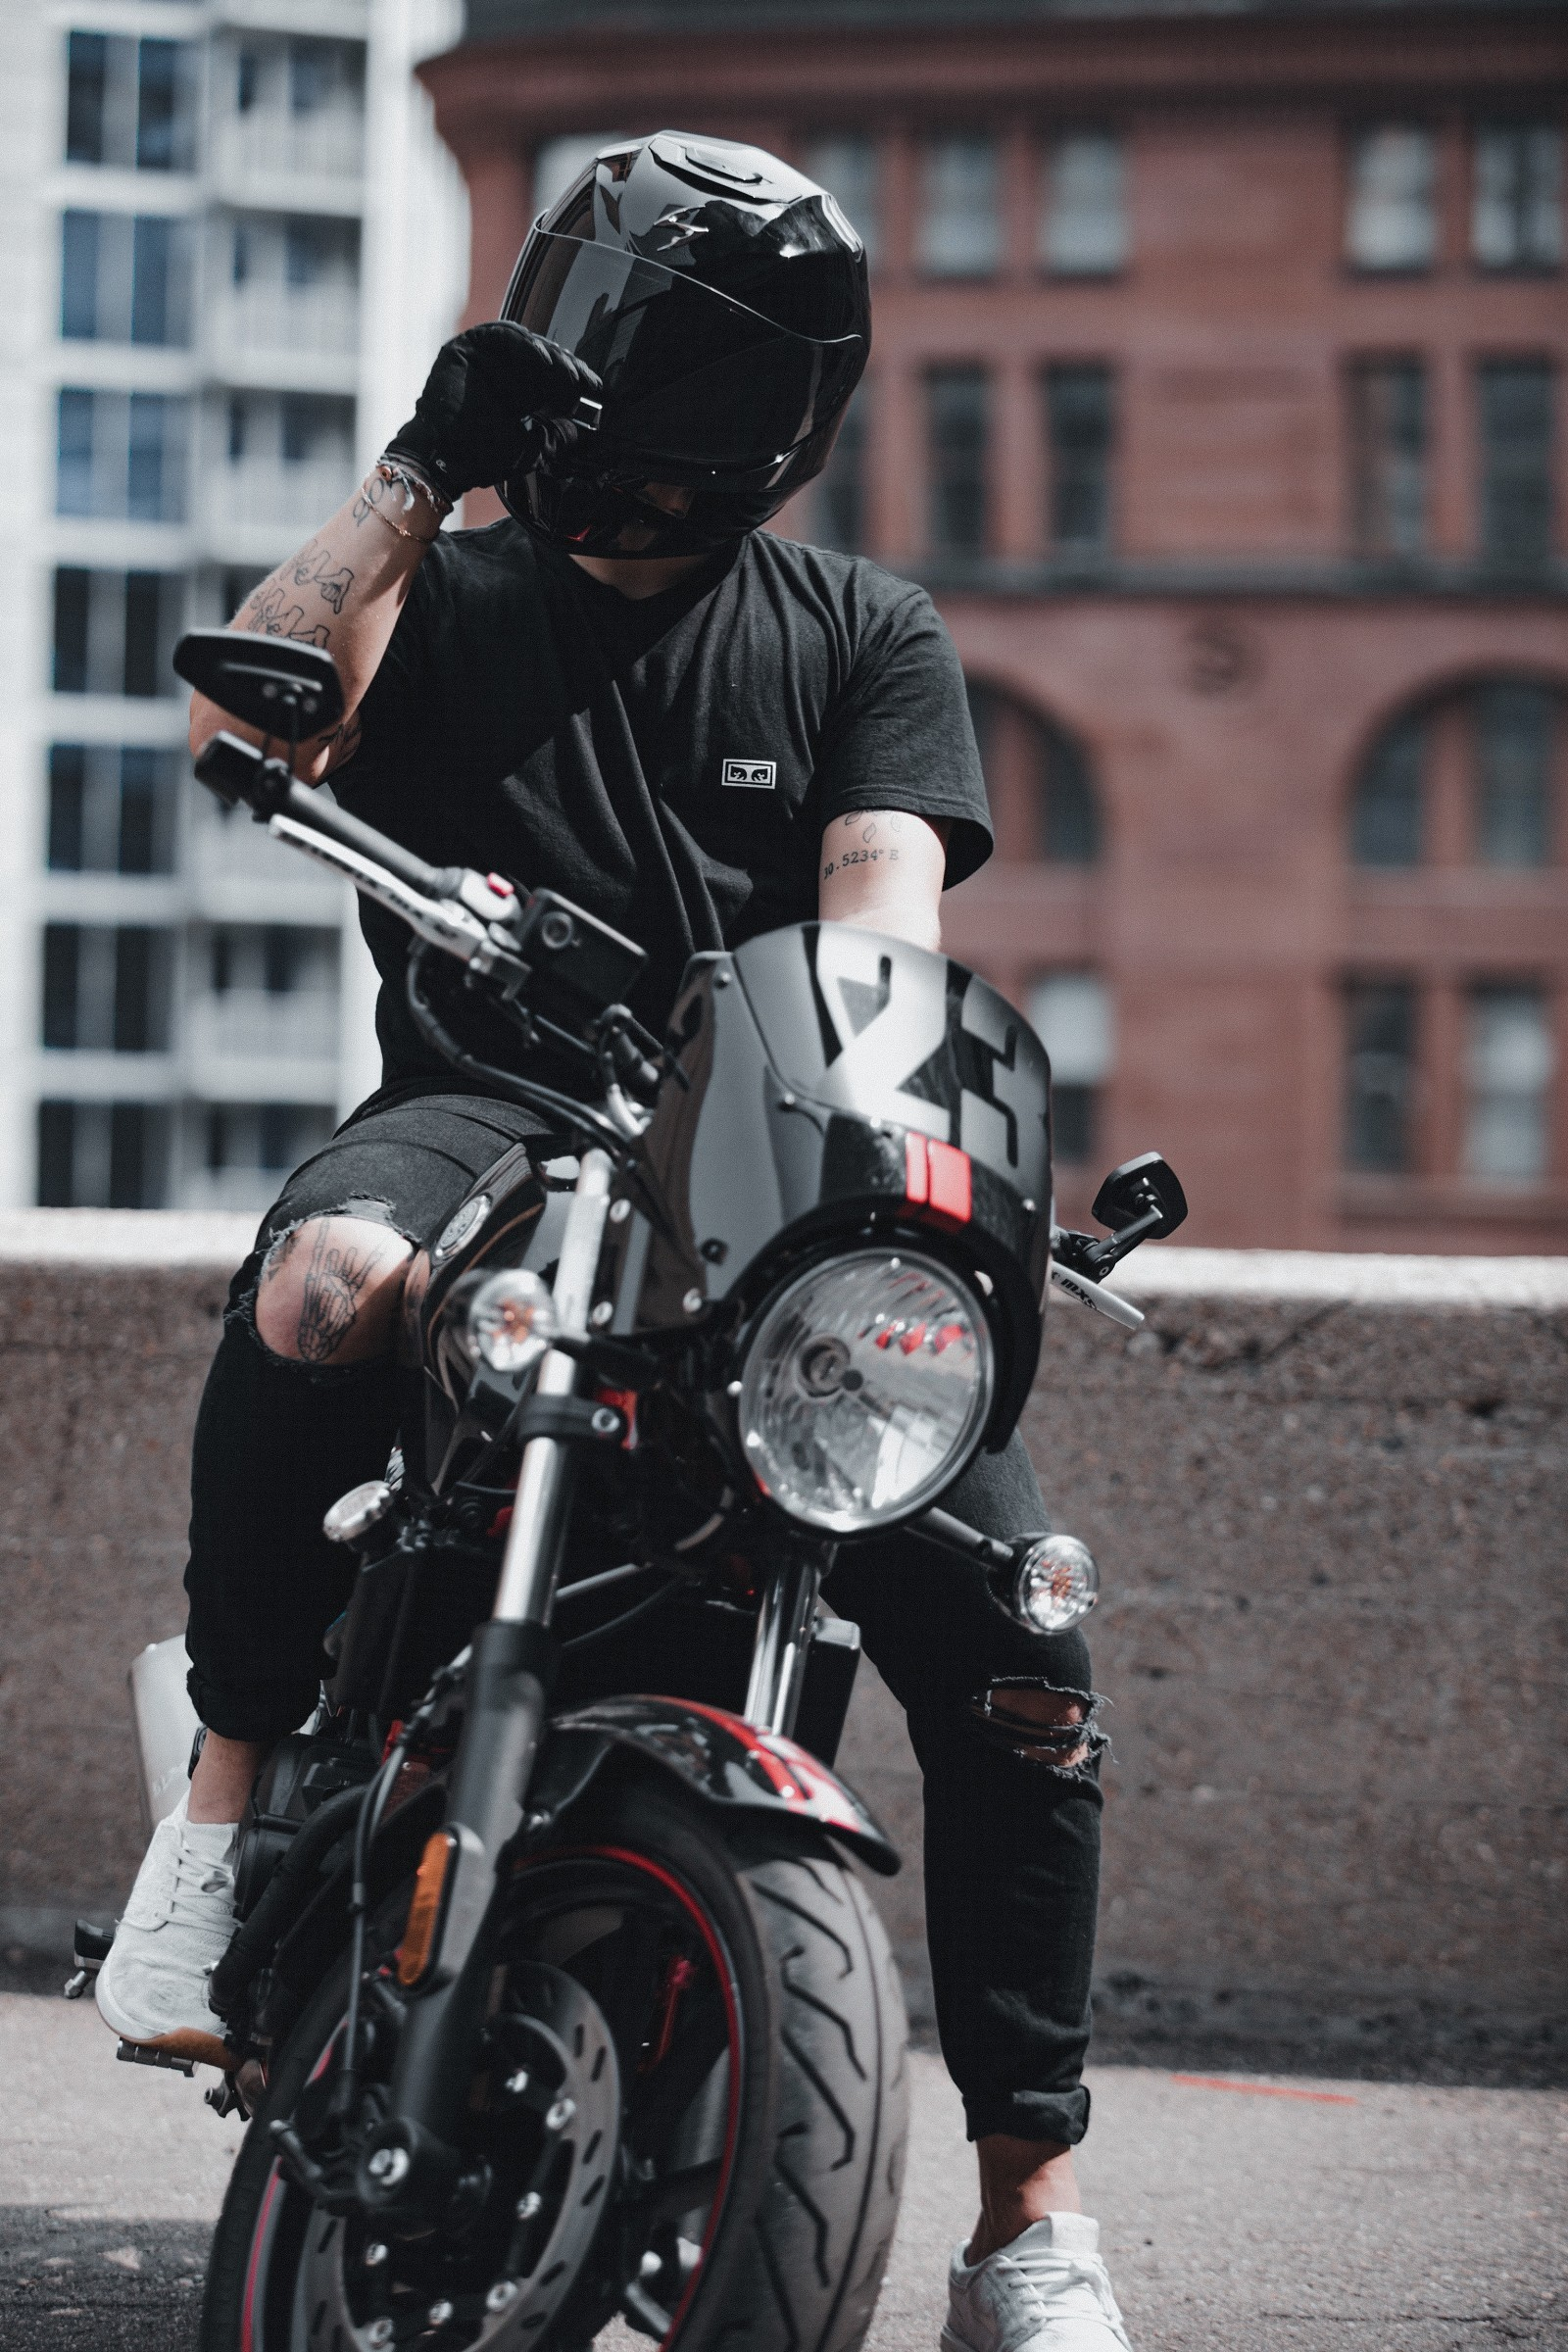 motorcycle rider education course